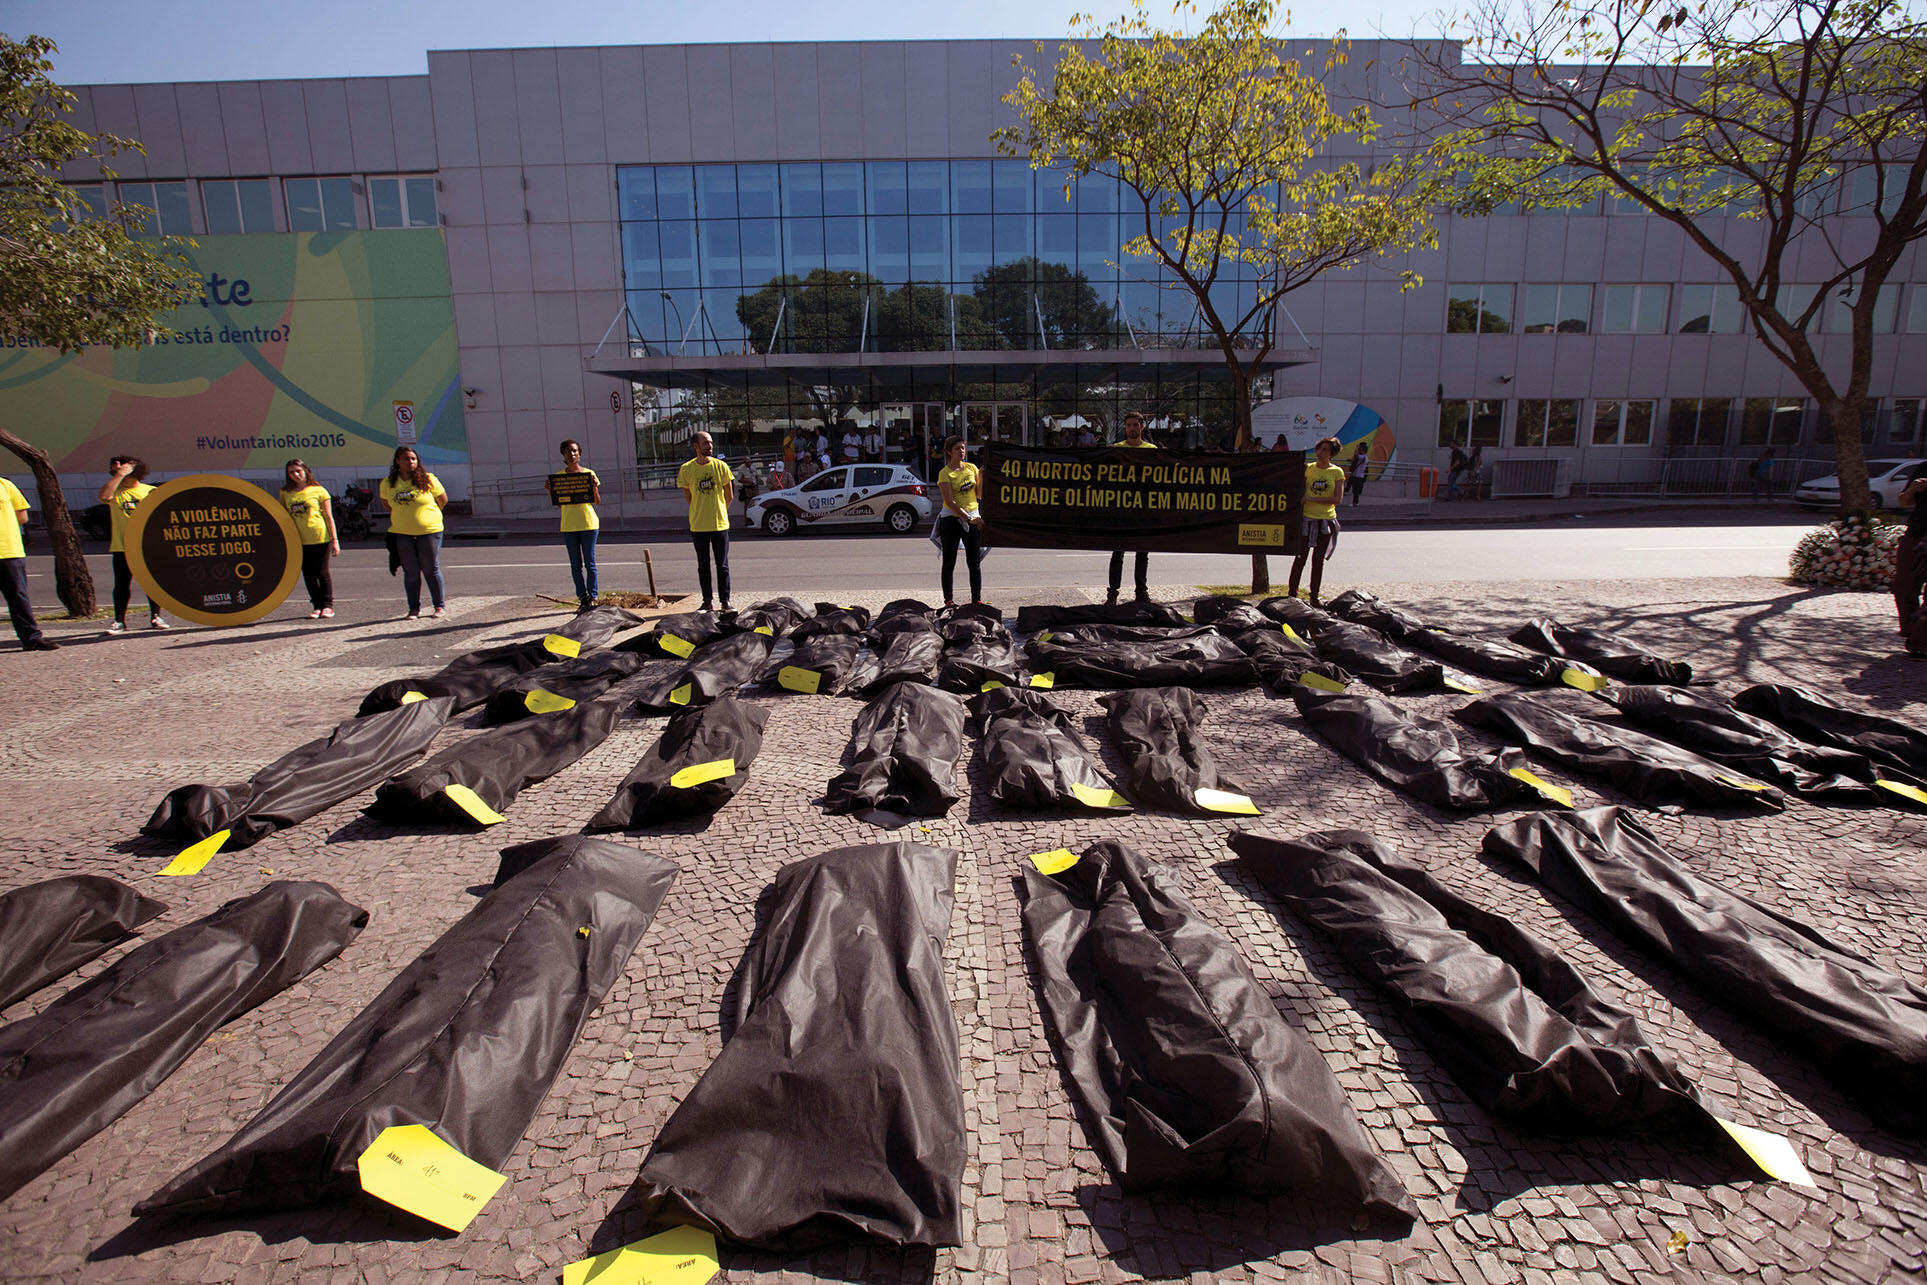 Rows of body bags on the sidewalk are used to represent victims in a protest of police violence in Brazil. (Photo by Silvia Izquierdo/AP Photo.)